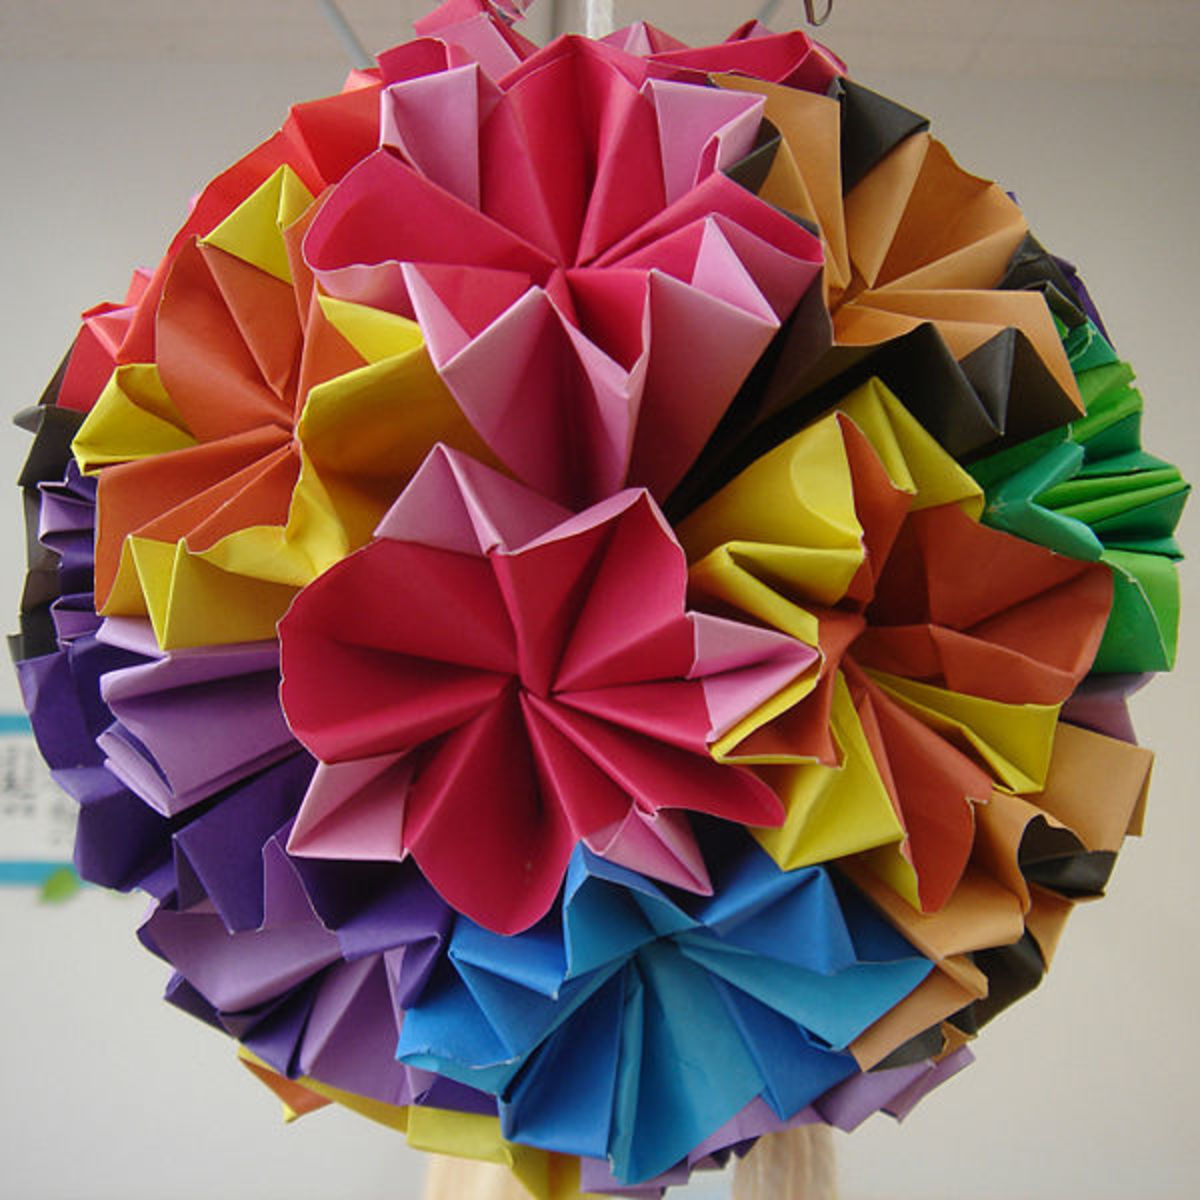 how to make origami balls stepbystep guide